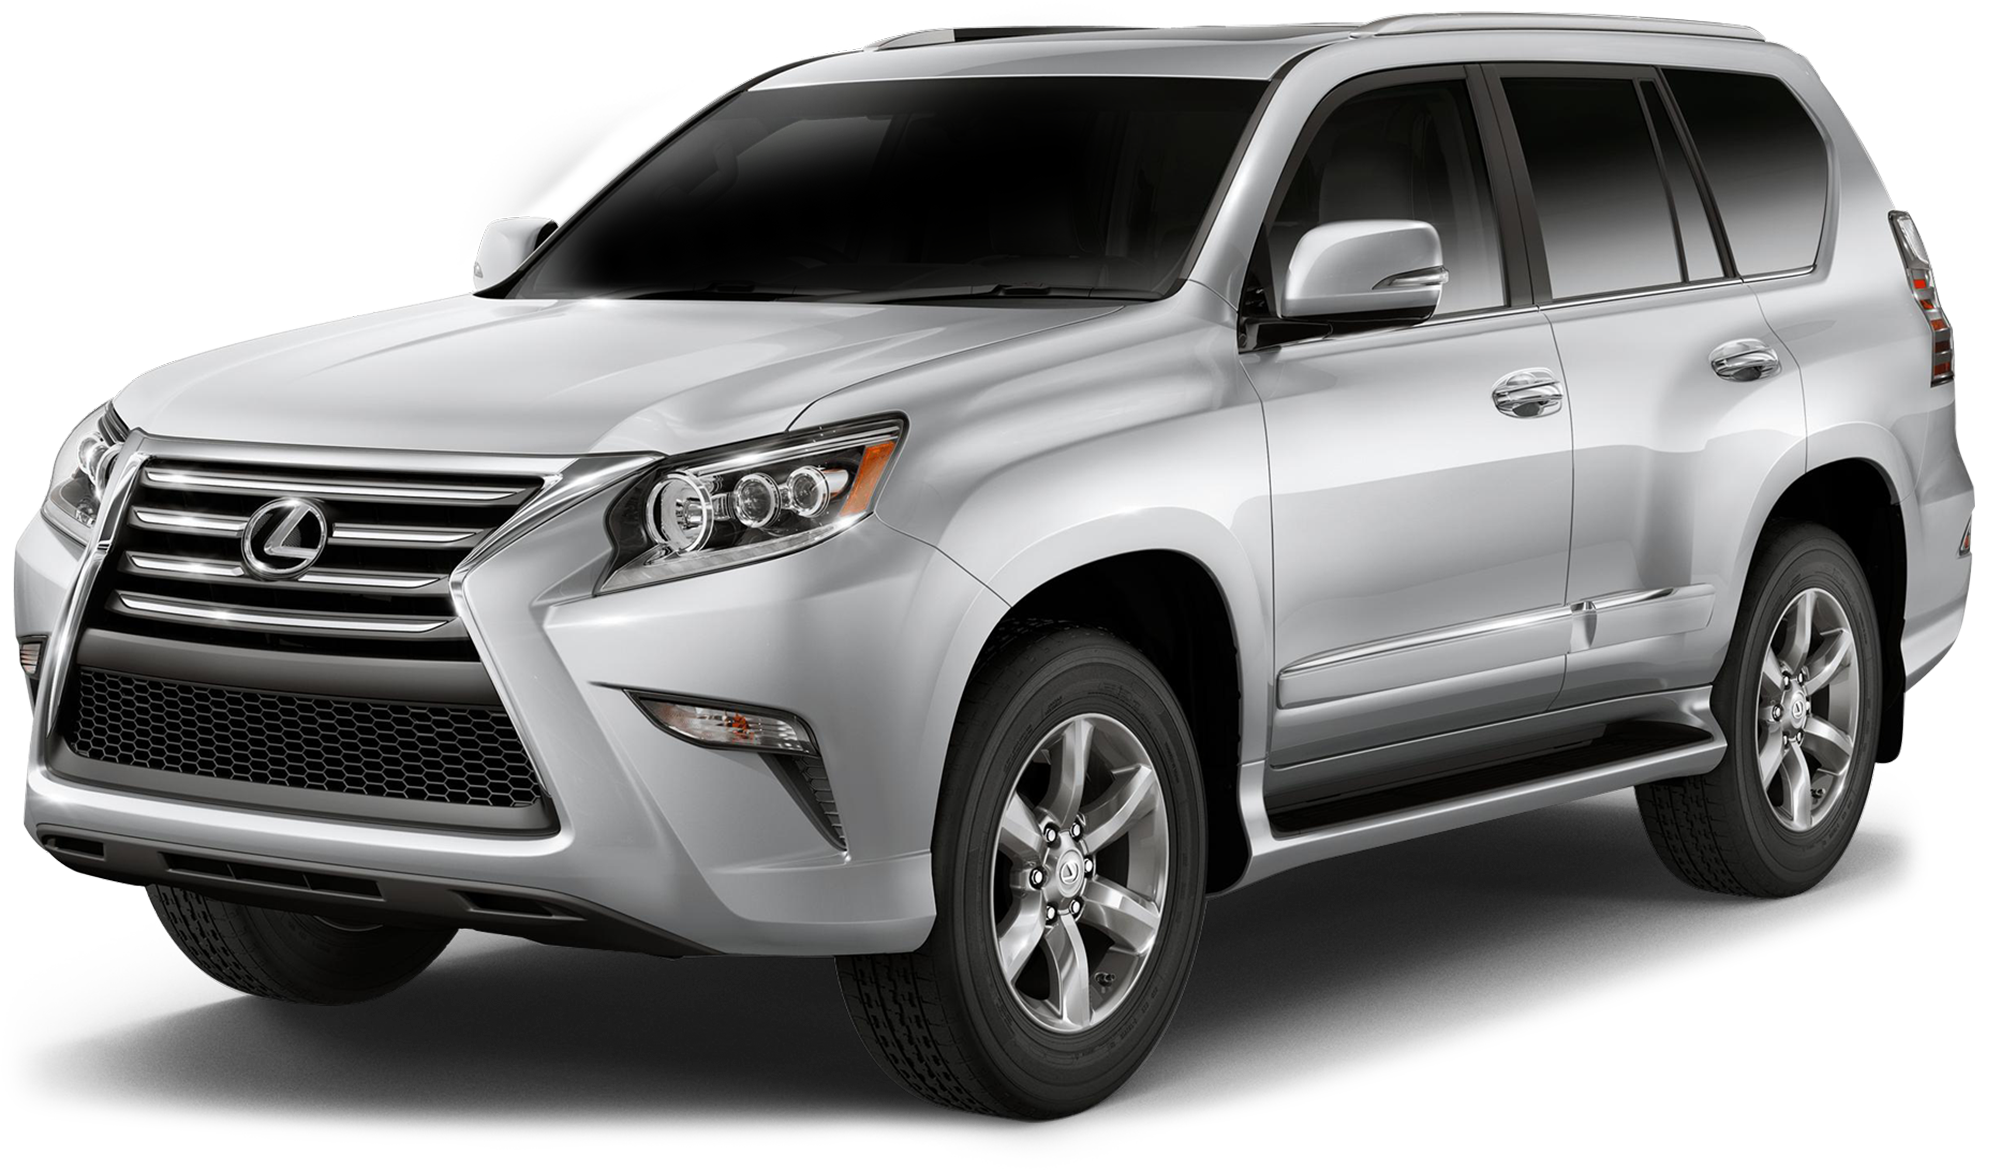 2019 Lexus GX 460 Incentives, Specials & Offers In